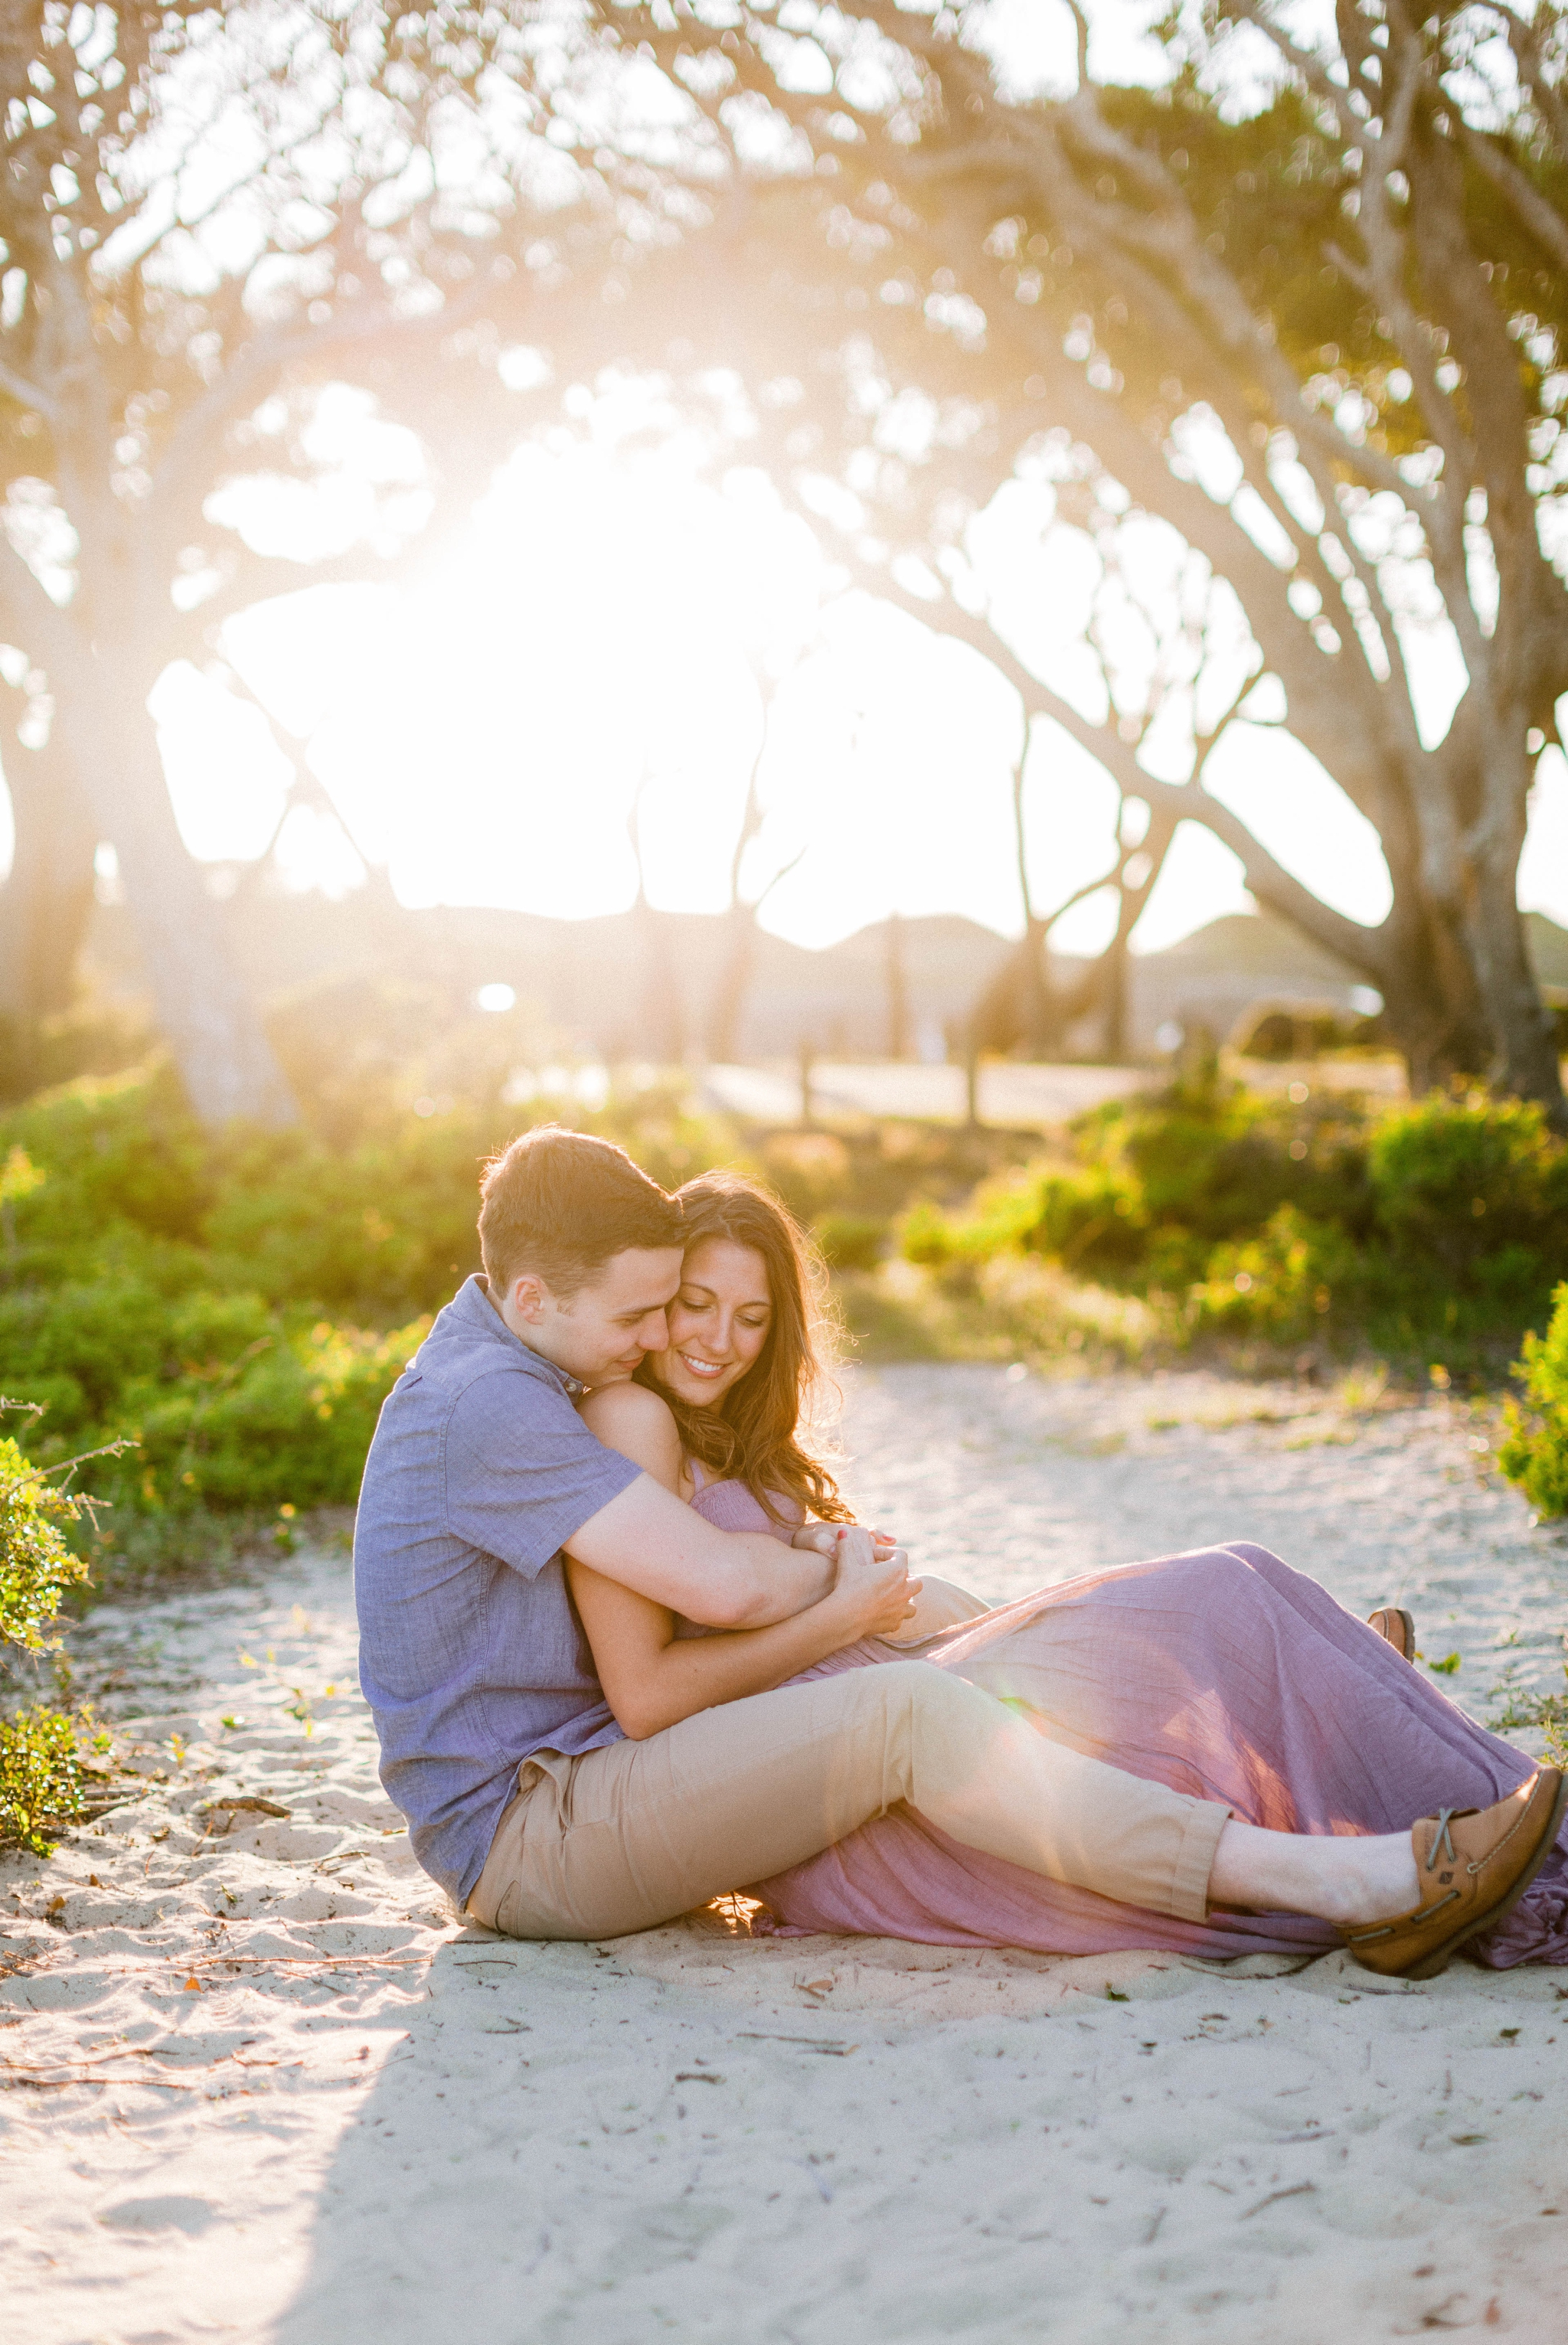 couple giggeling on the beach in front of live oak trees with the sunset behind them - Woman is in a flowy pastel maxi dress - outdoor golden light session - engagement photographer in honolulu, oahu, hawaii - johanna dye photography